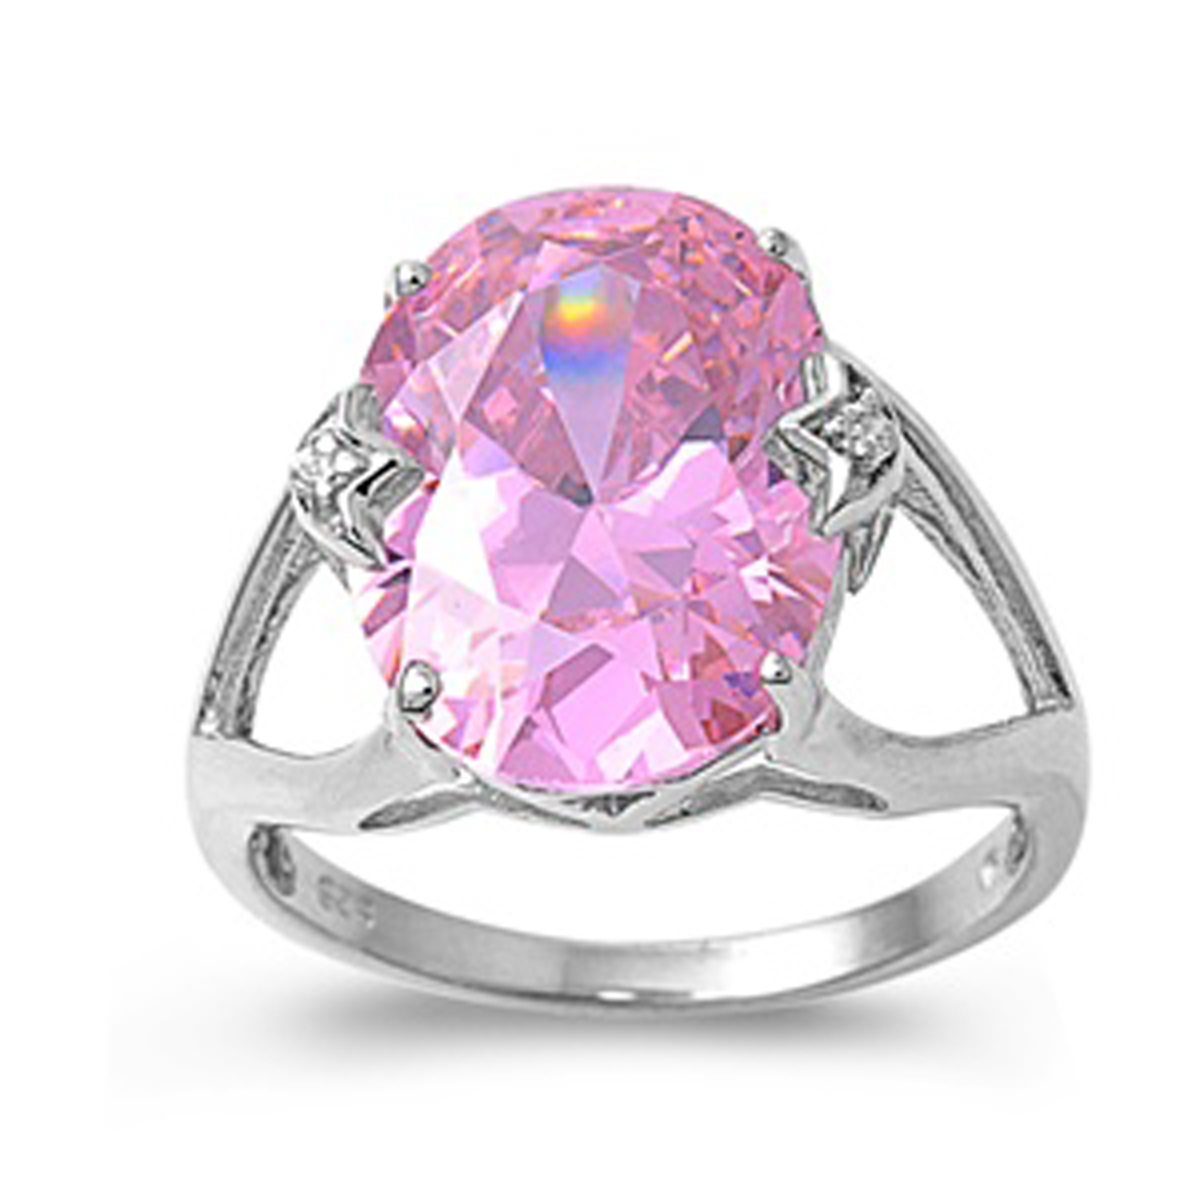 Sterling Silver Women's Flawless Pink Cubic Zirconia Large Solitaire Ring (Sizes 5-10) (Ring Size 9)